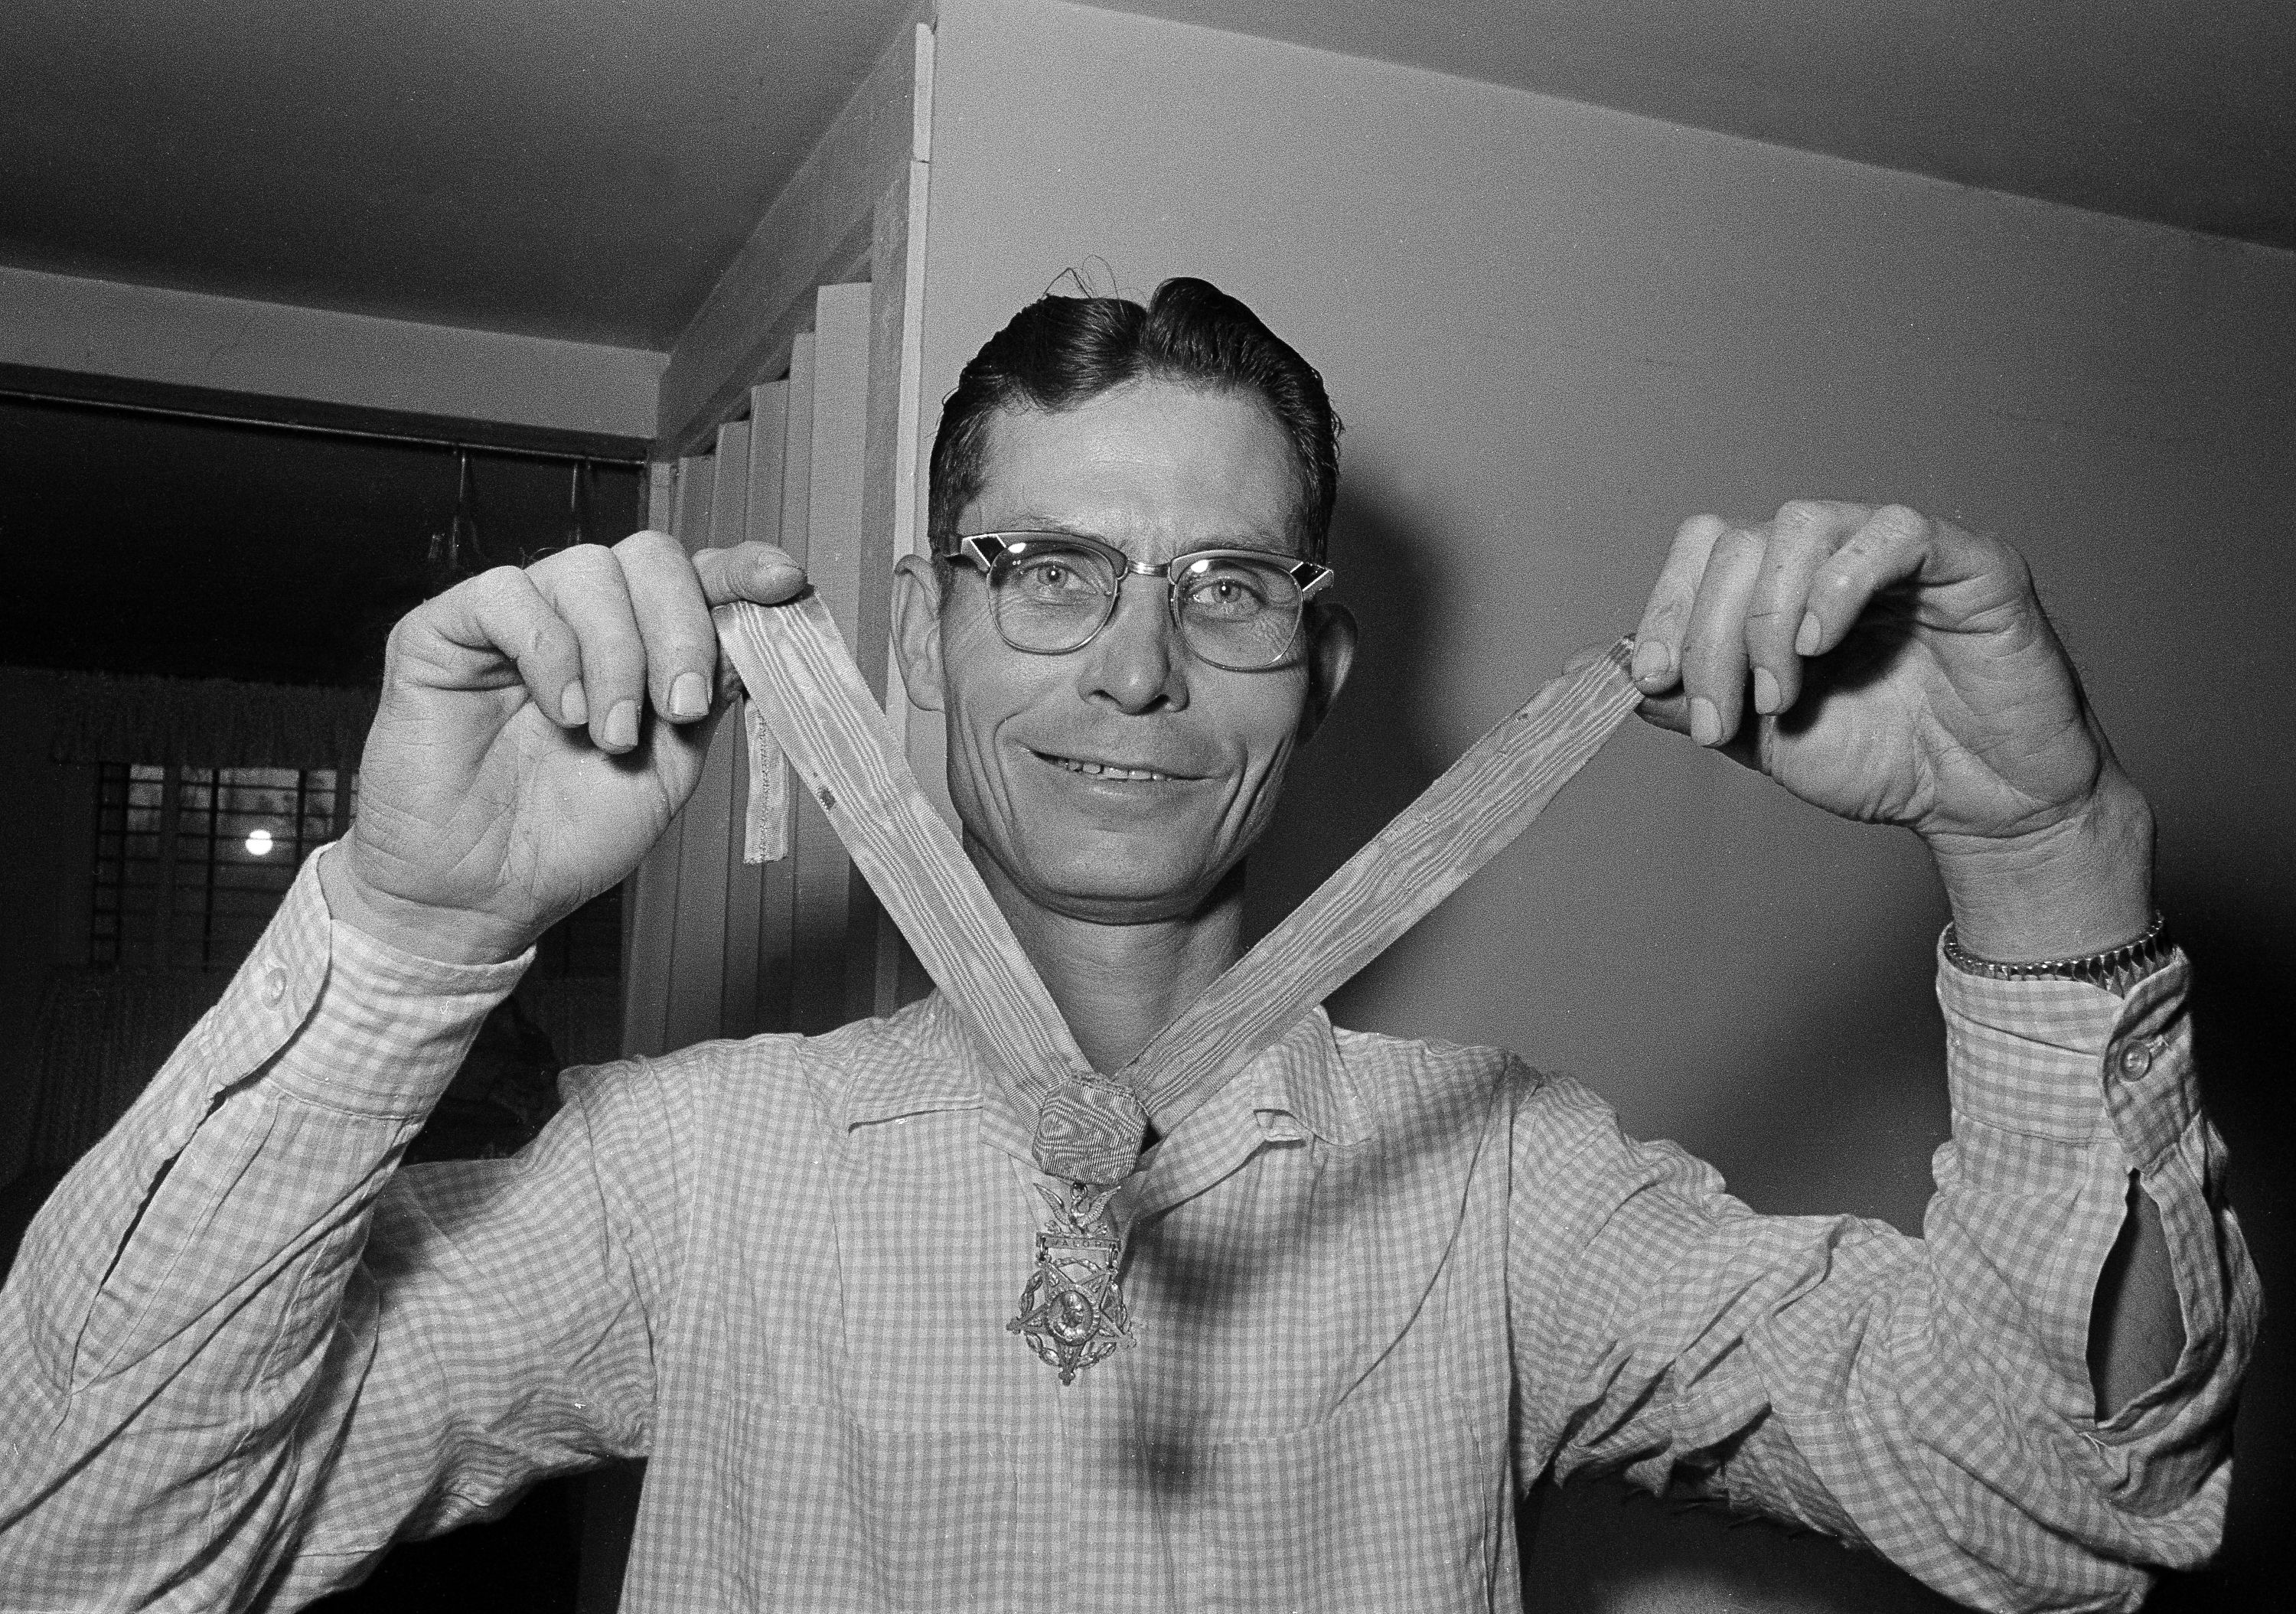 doss single guys Story by the desmond doss council on april 1, 1942, desmond doss joined the united states army little did he realize that three and a half years later, he would be standing on the white house lawn, receiving the nation's highest award for his bravery and courage under fire.